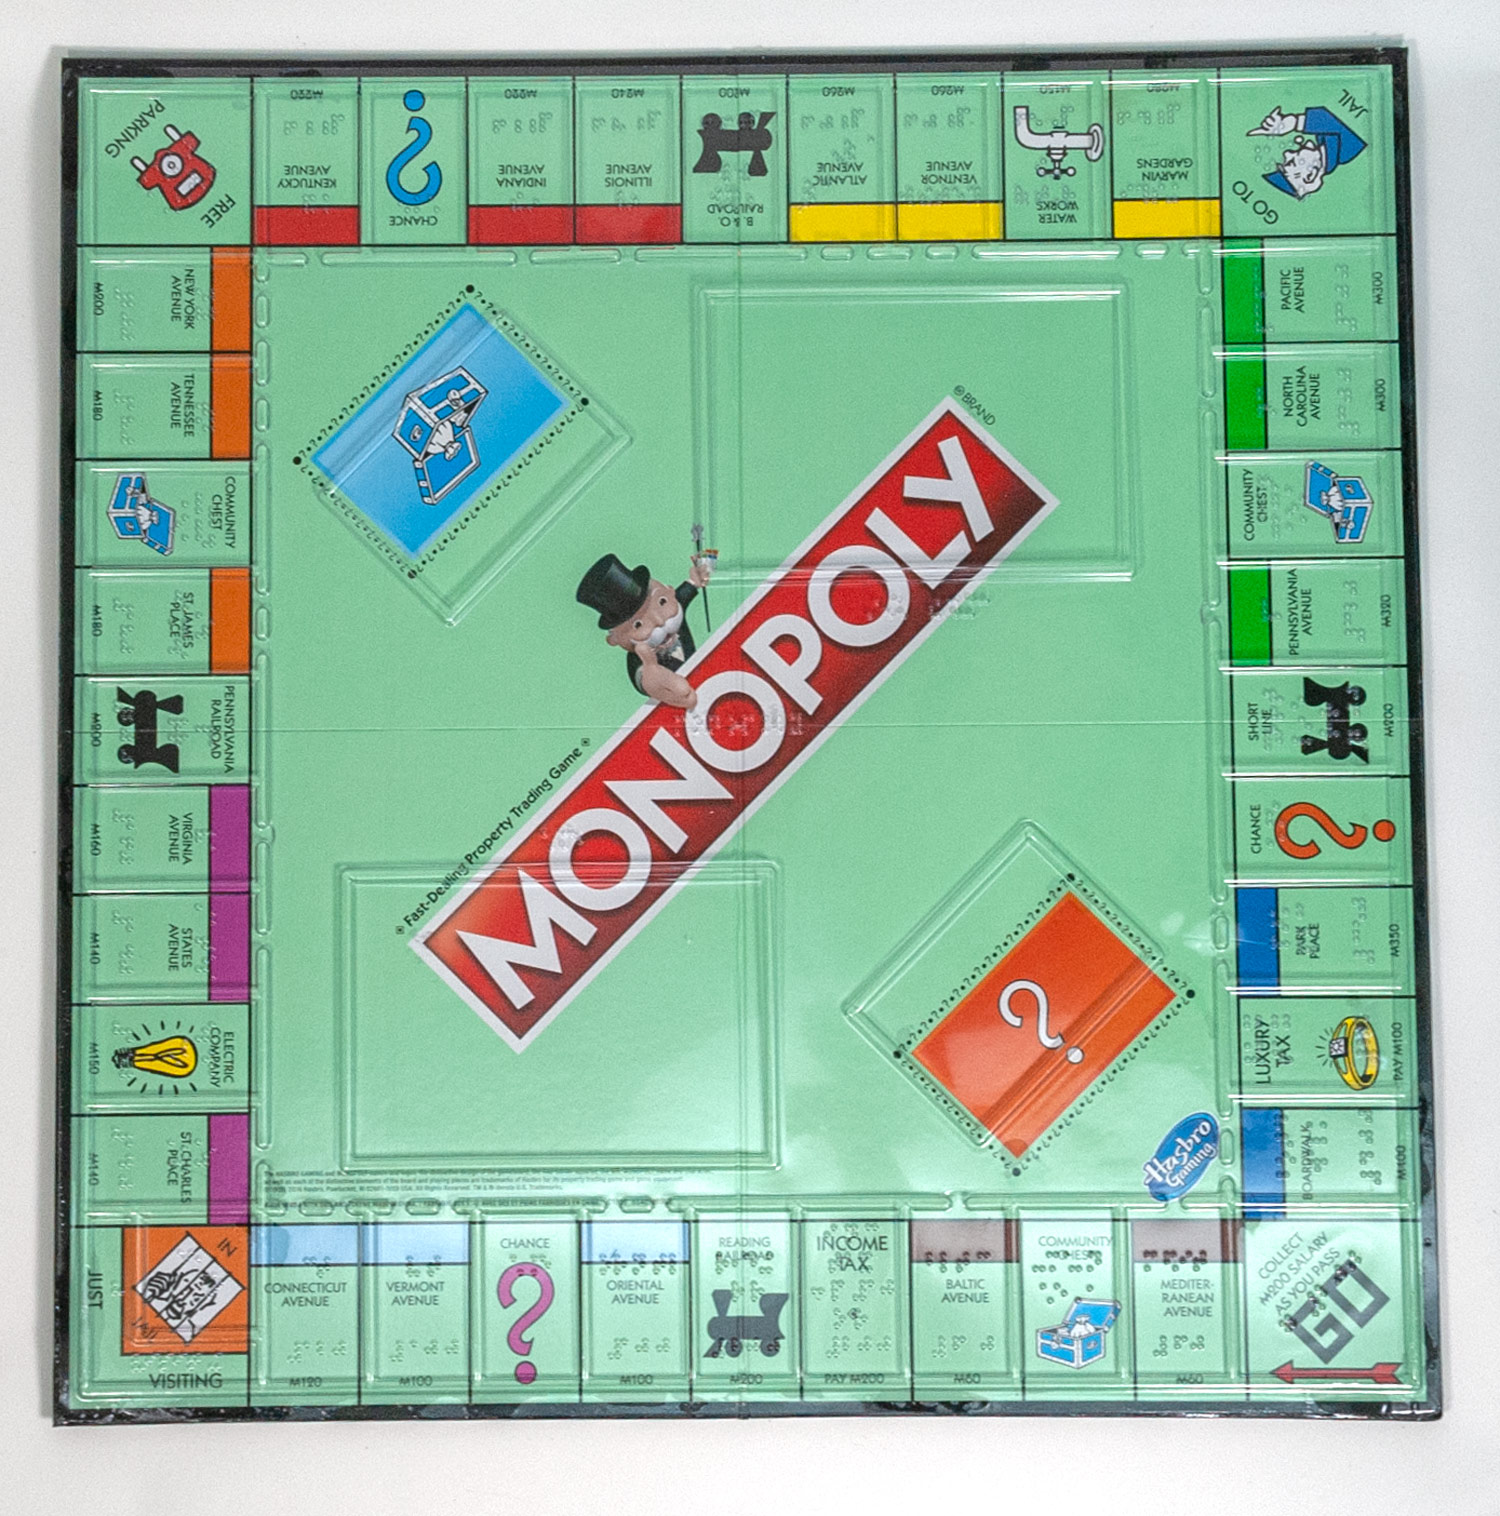 Braille and Low Vision Monopoly Price: $58.95